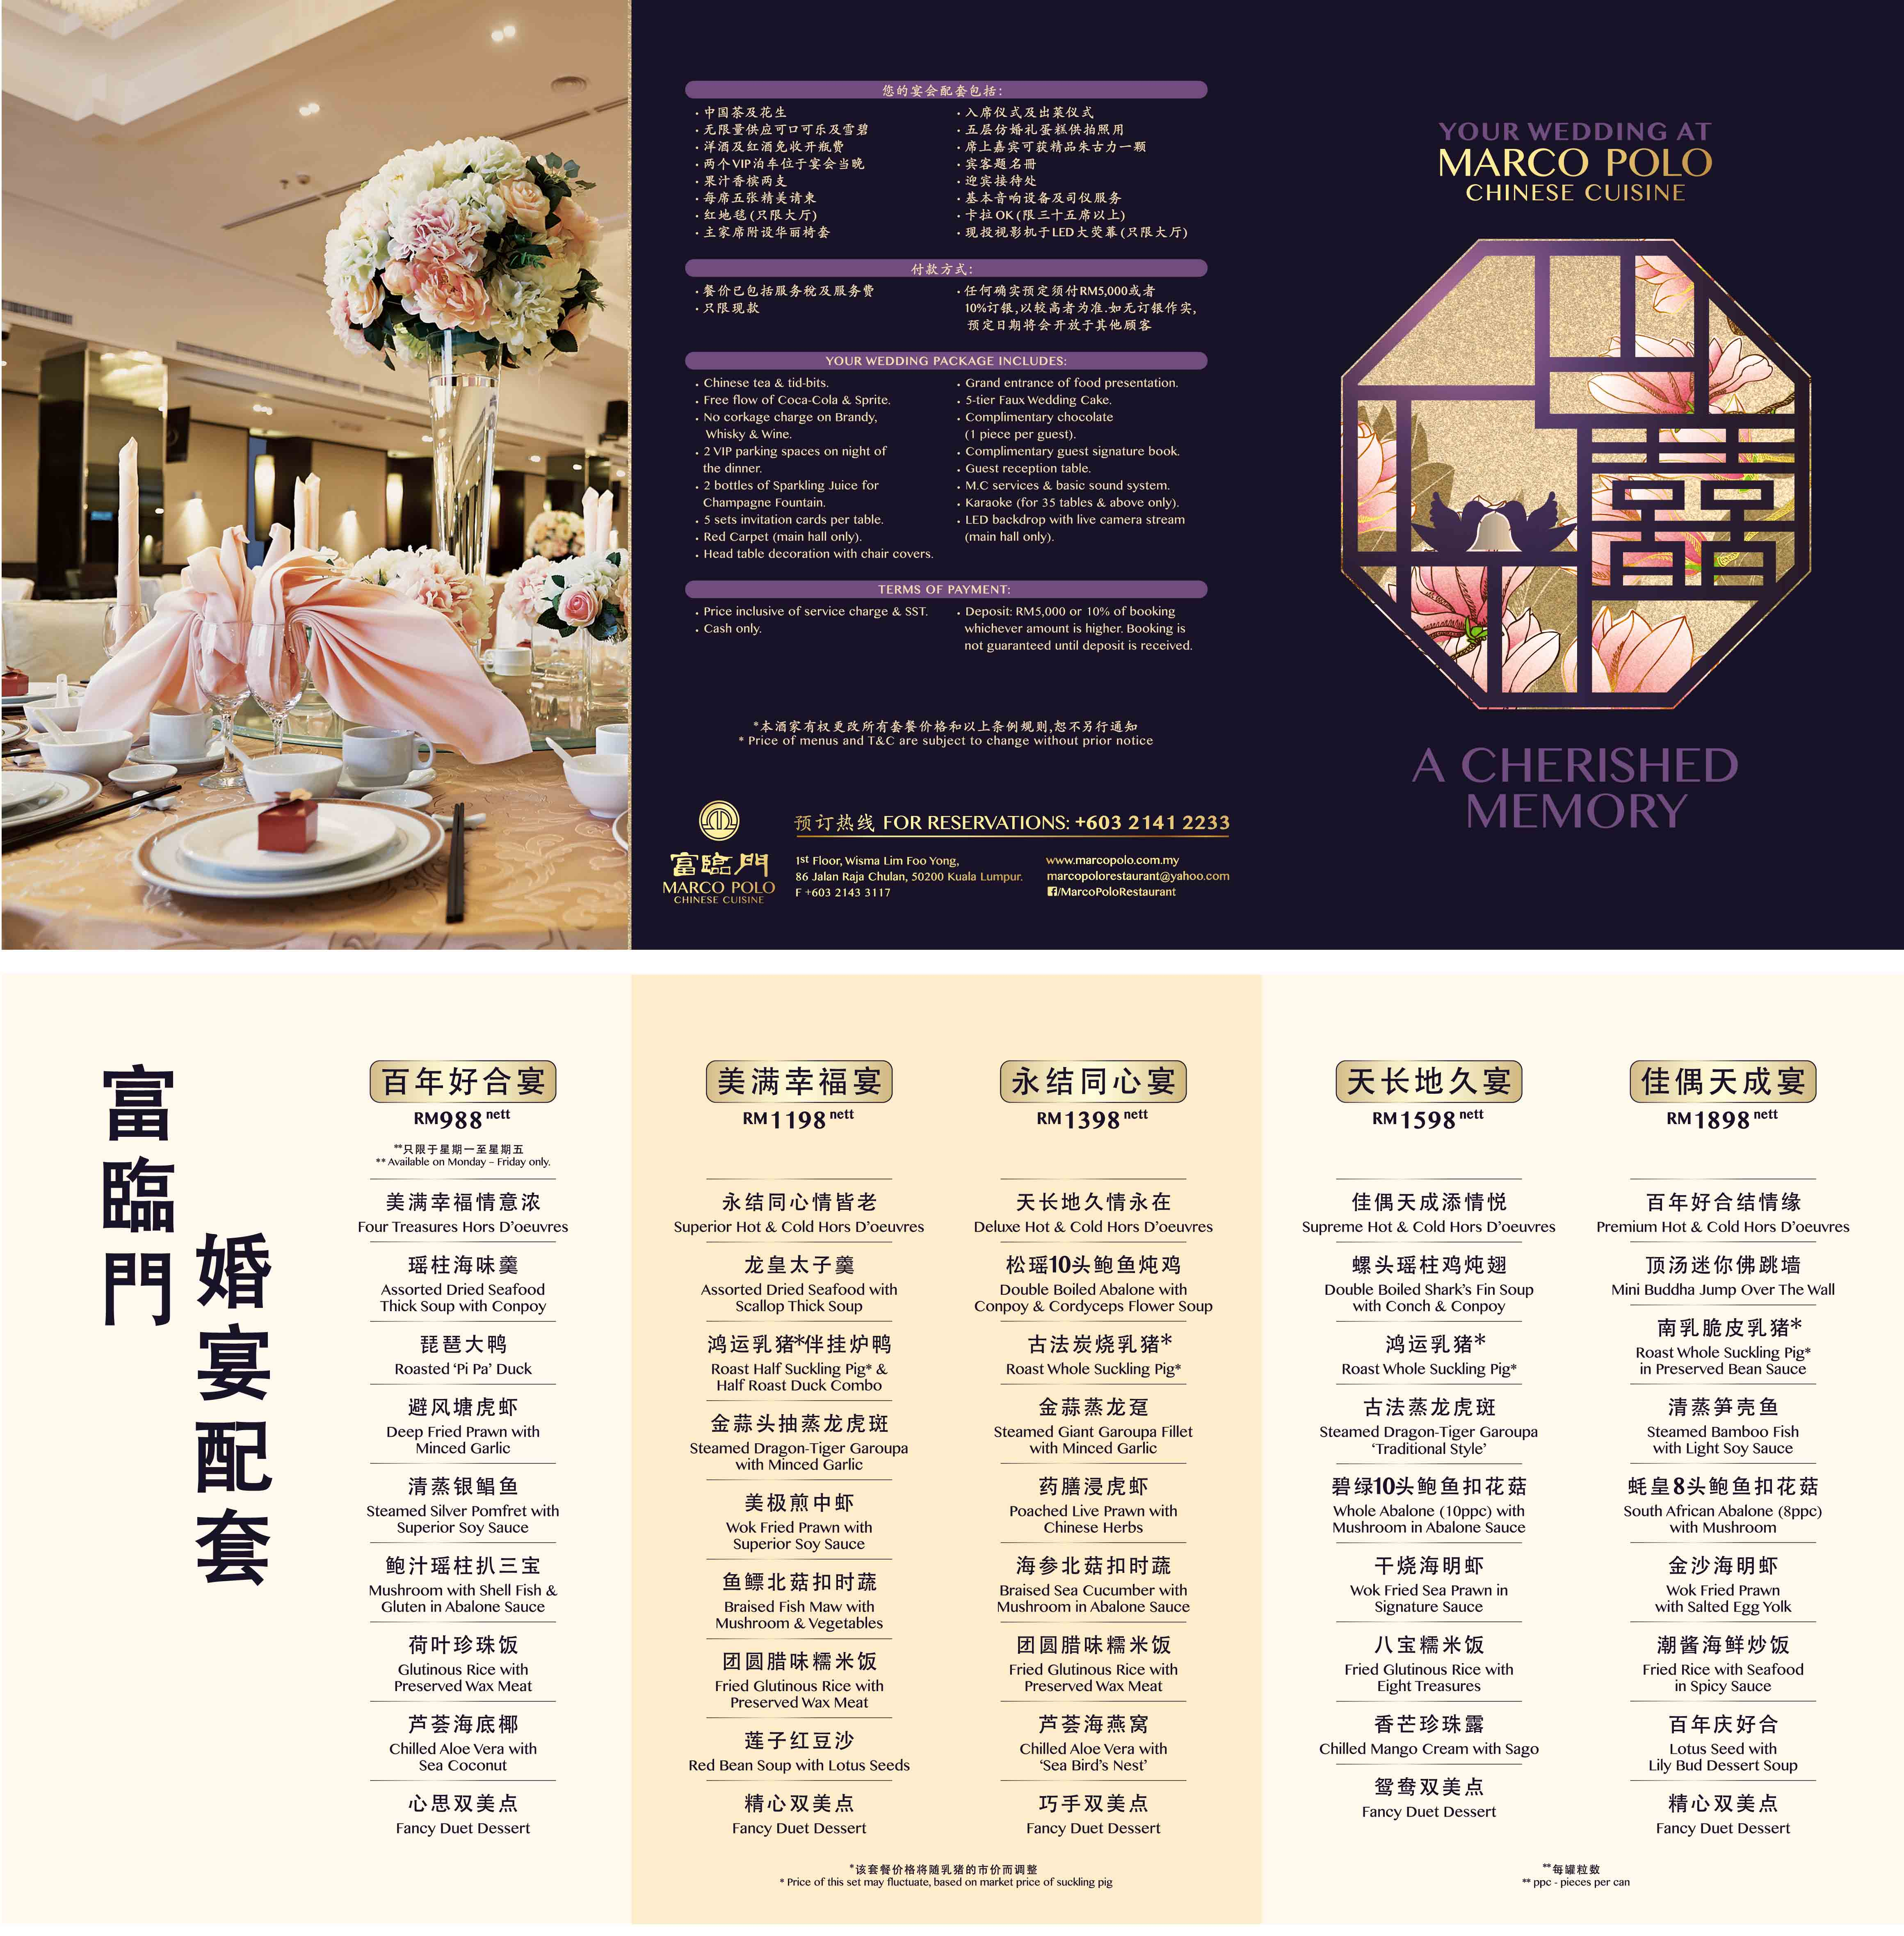 Asian Wedding Food Menu: Authentic Chinese Cuisine